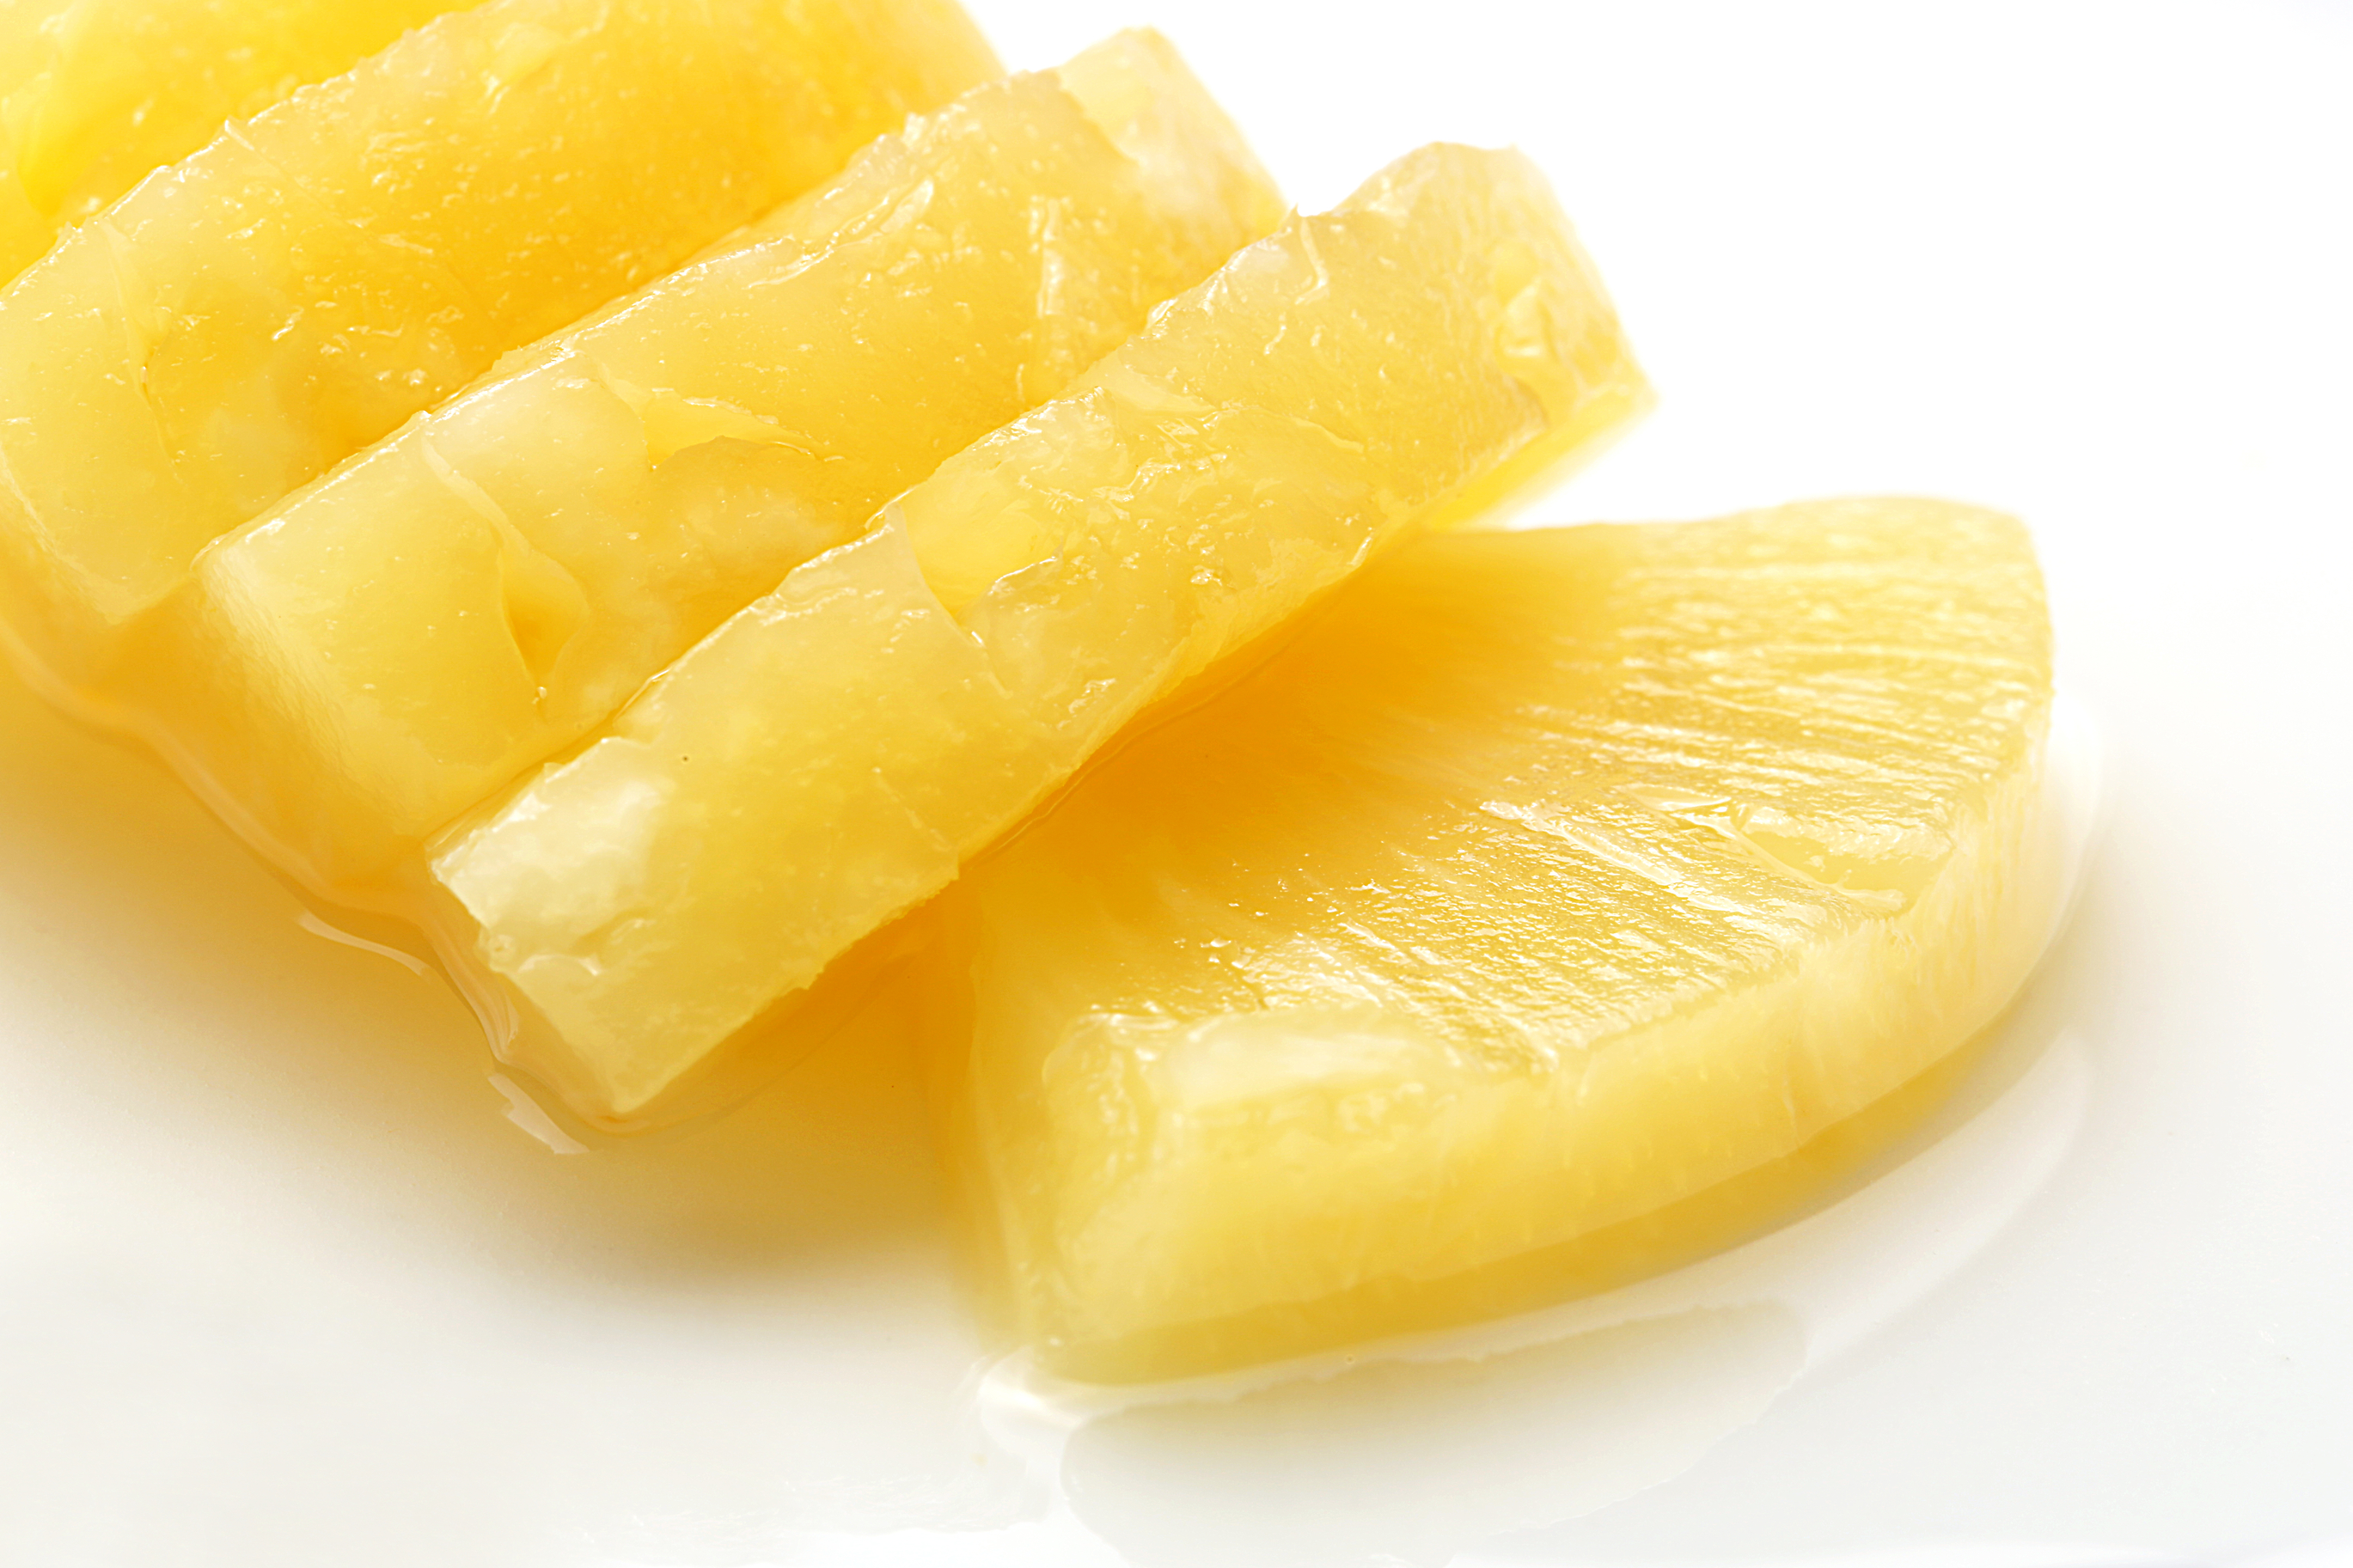 The Pineapple Diet: Weight Loss Winner or Dangerous Strategy?